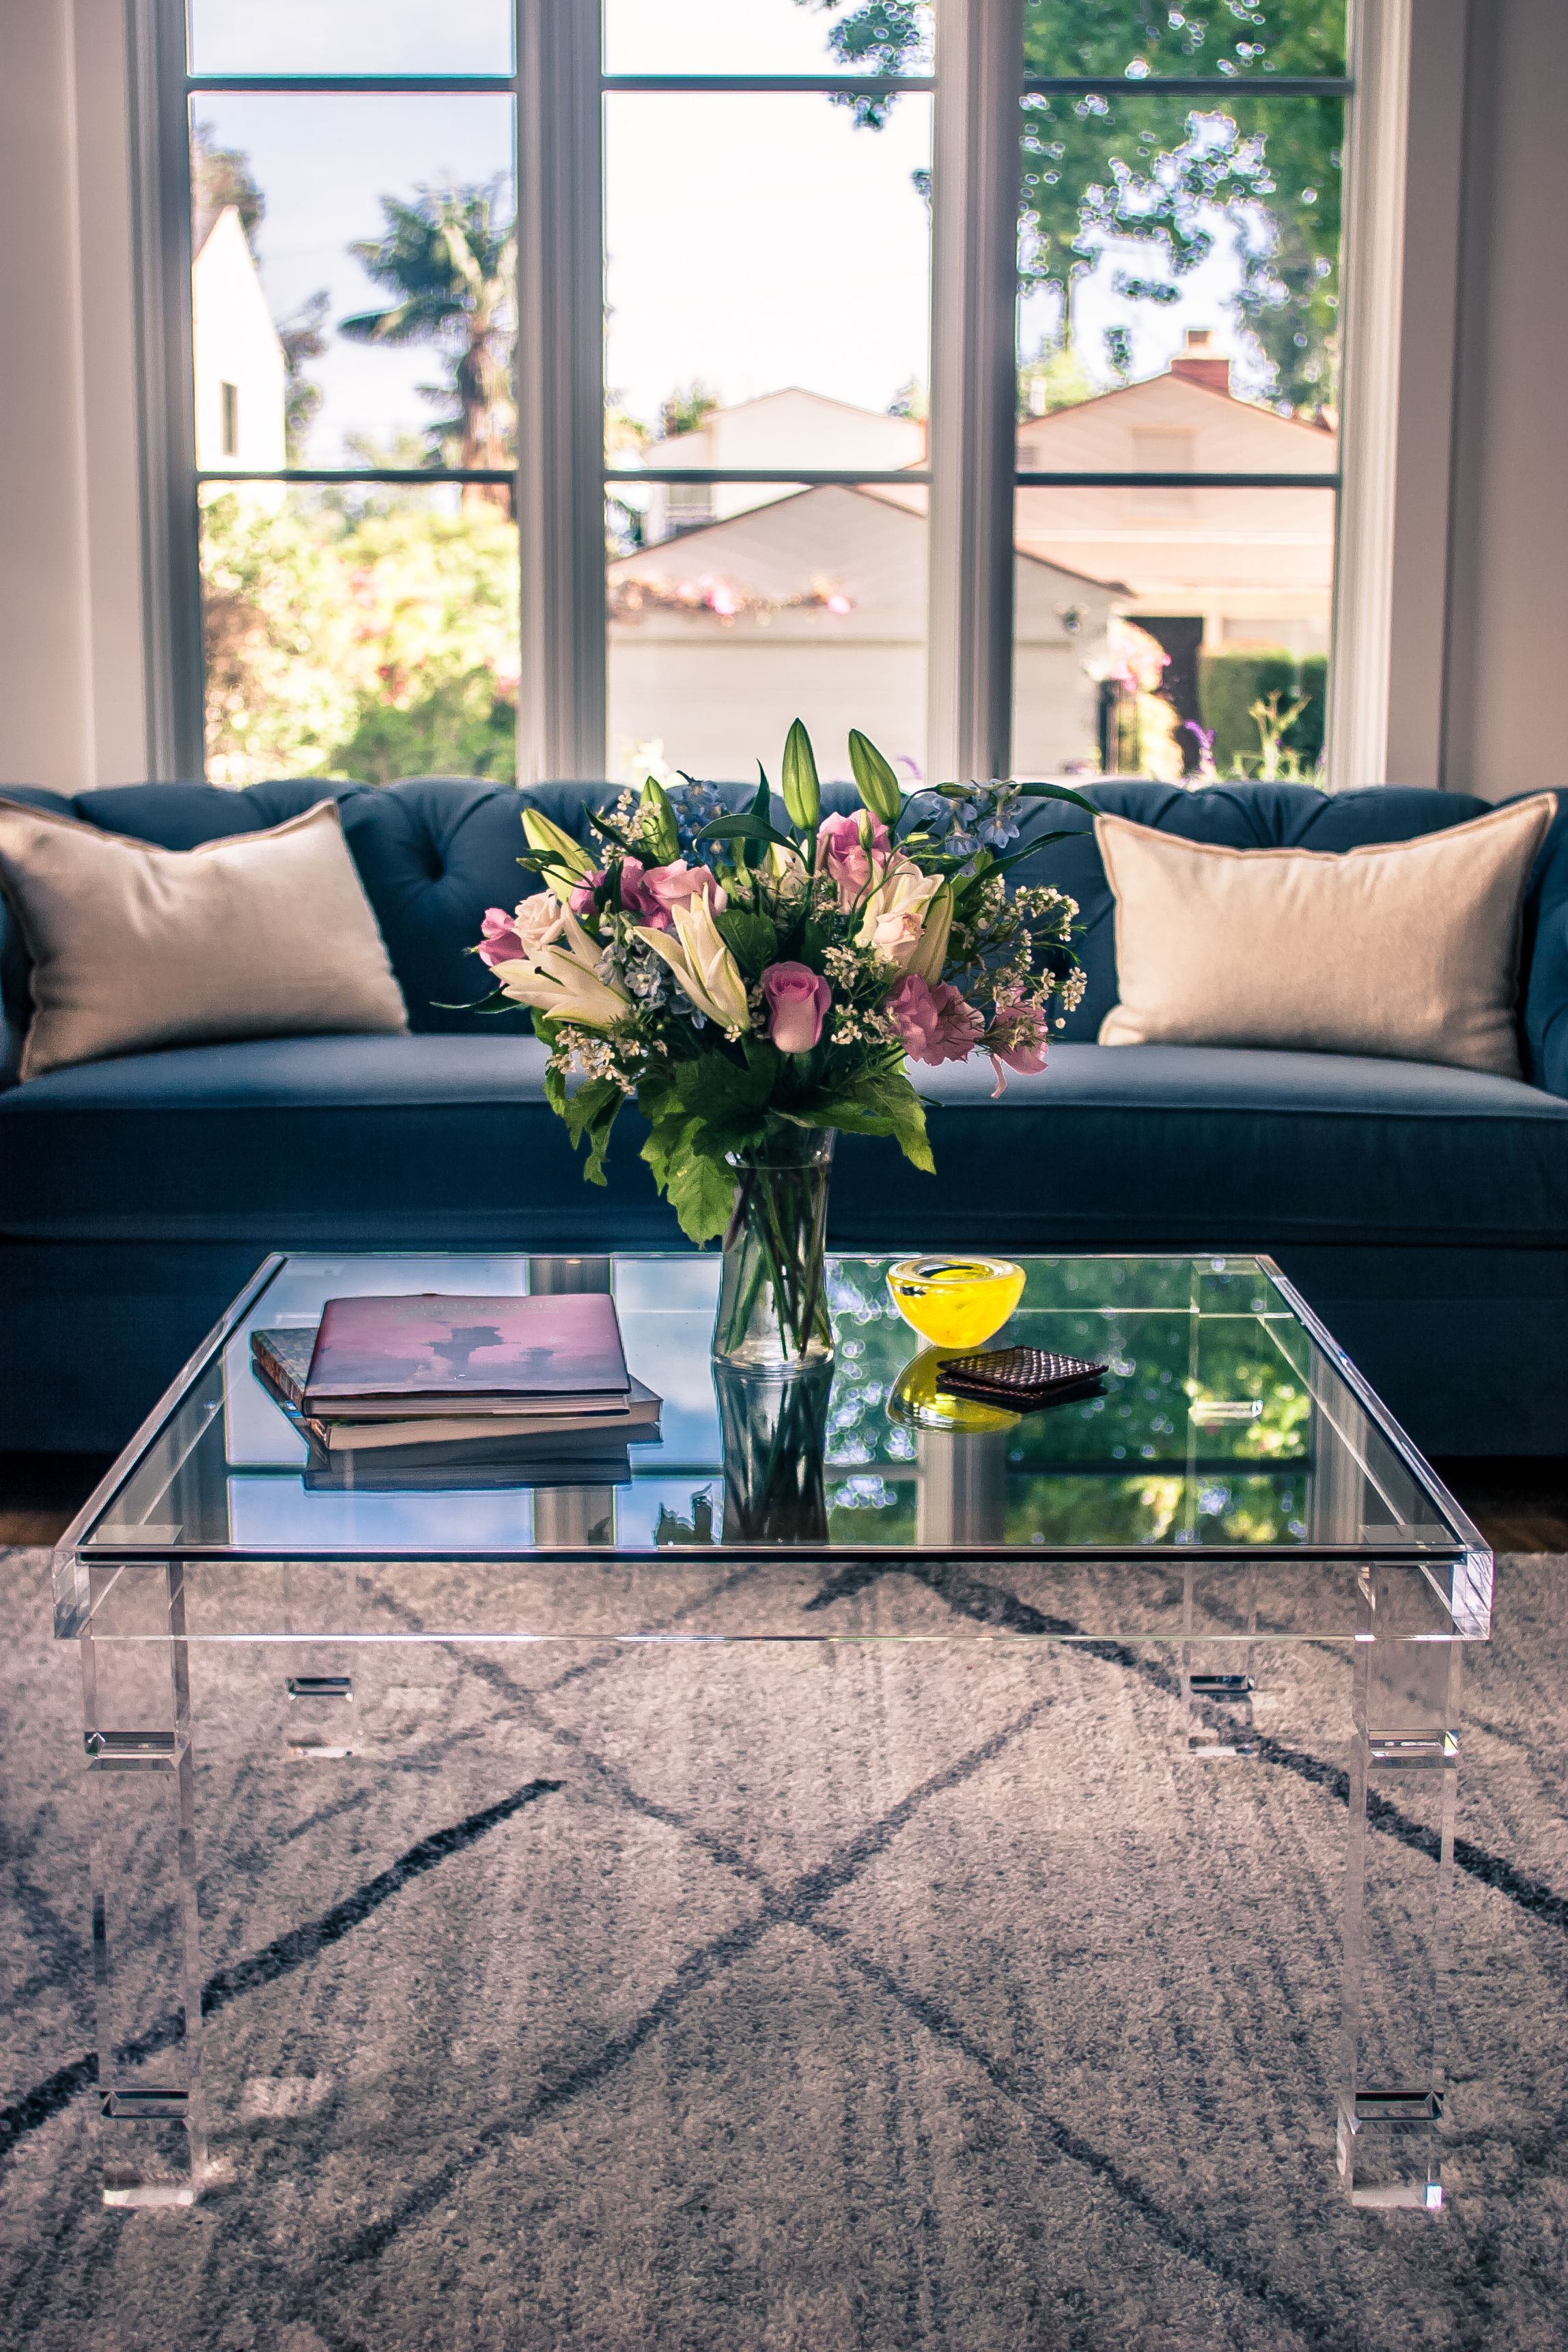 Petals' Woww Bouquet in 2020 Home decor, Coffee table